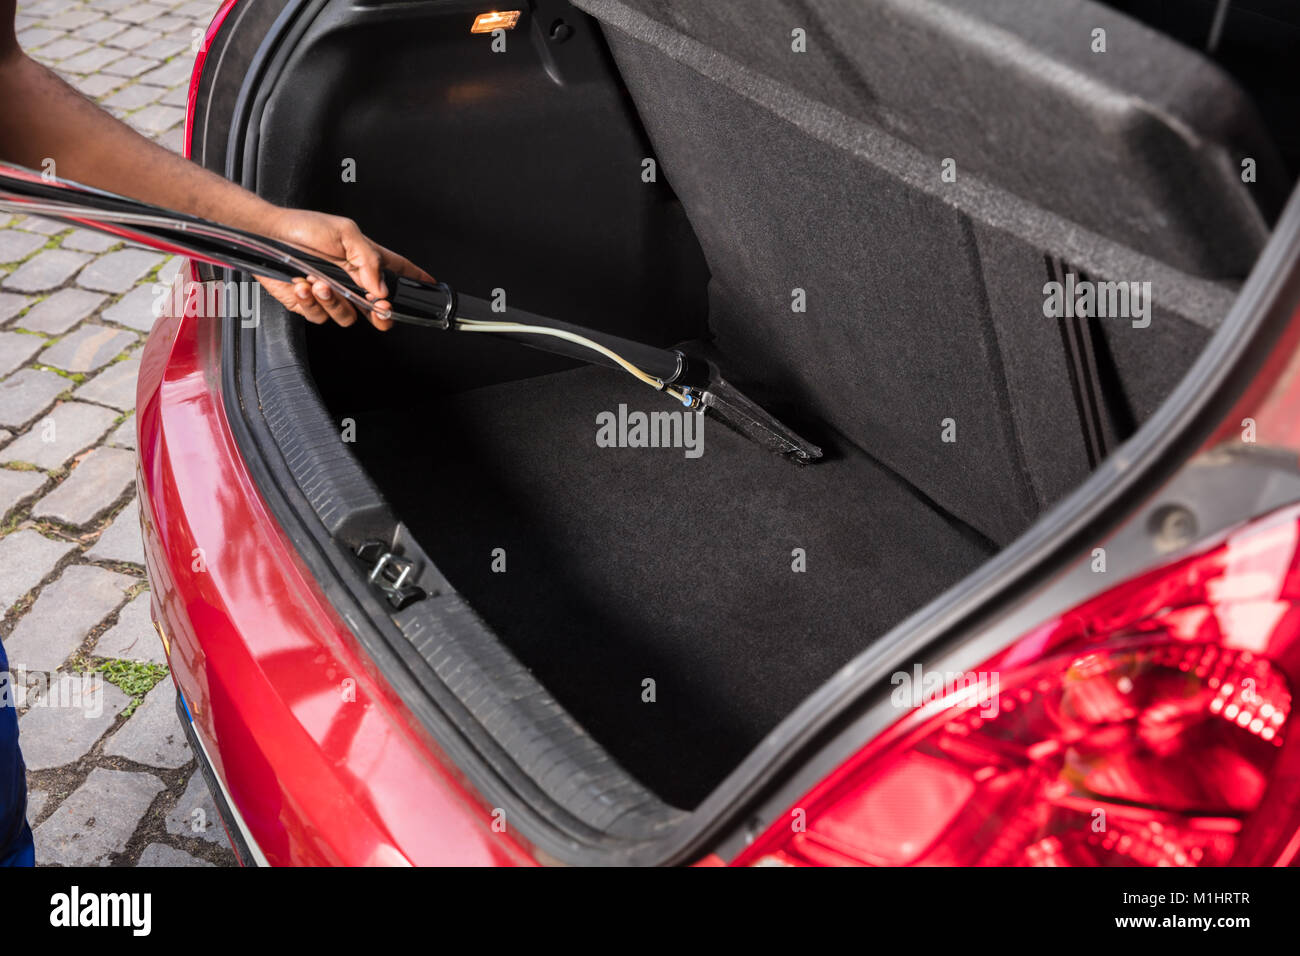 Close-up Of Handyman Vacuuming Car Trunk With Vacuum Cleaner - Stock Image